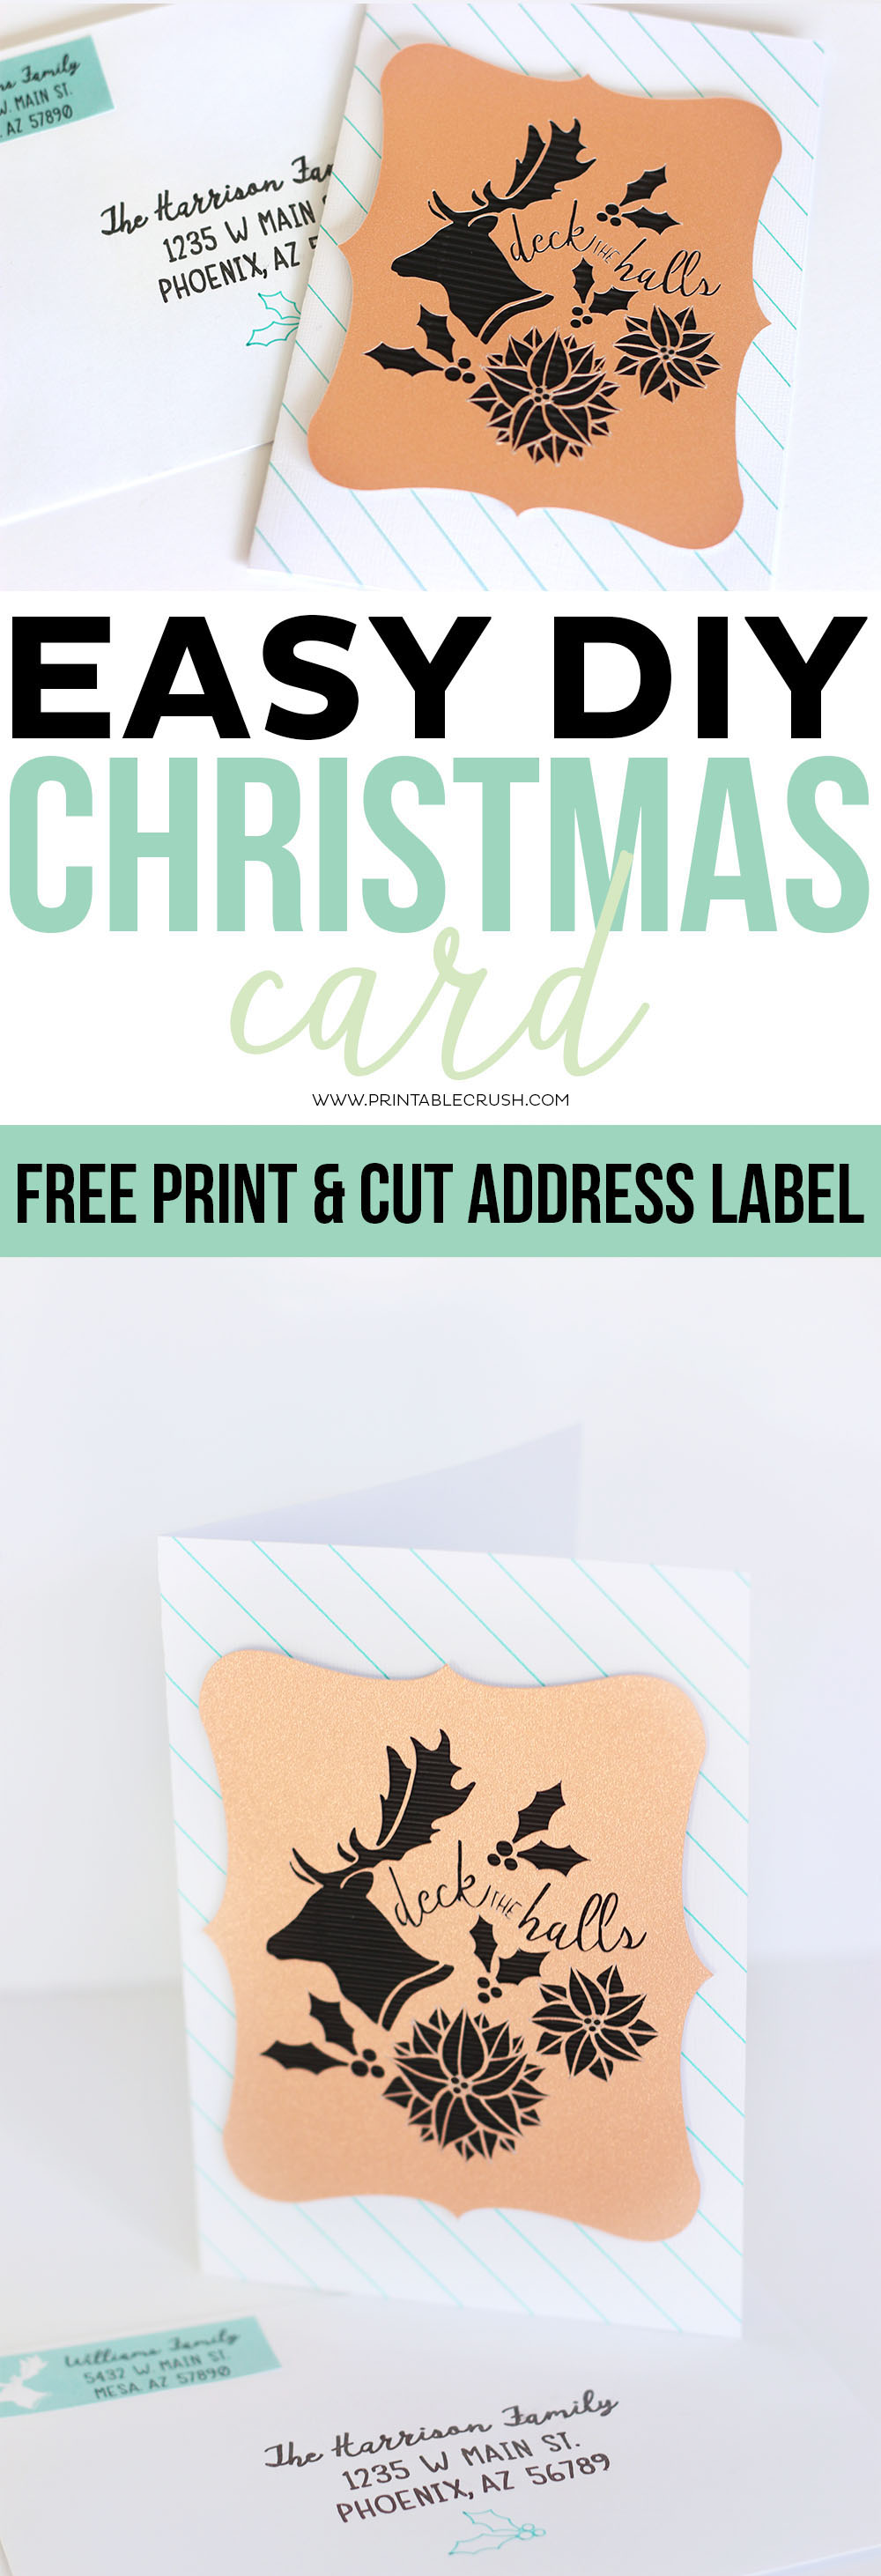 This Easy DIY Christmas Card tutorial also comes with a FREE Printable Address Label! You can customize the paper, colors, textures, and more.